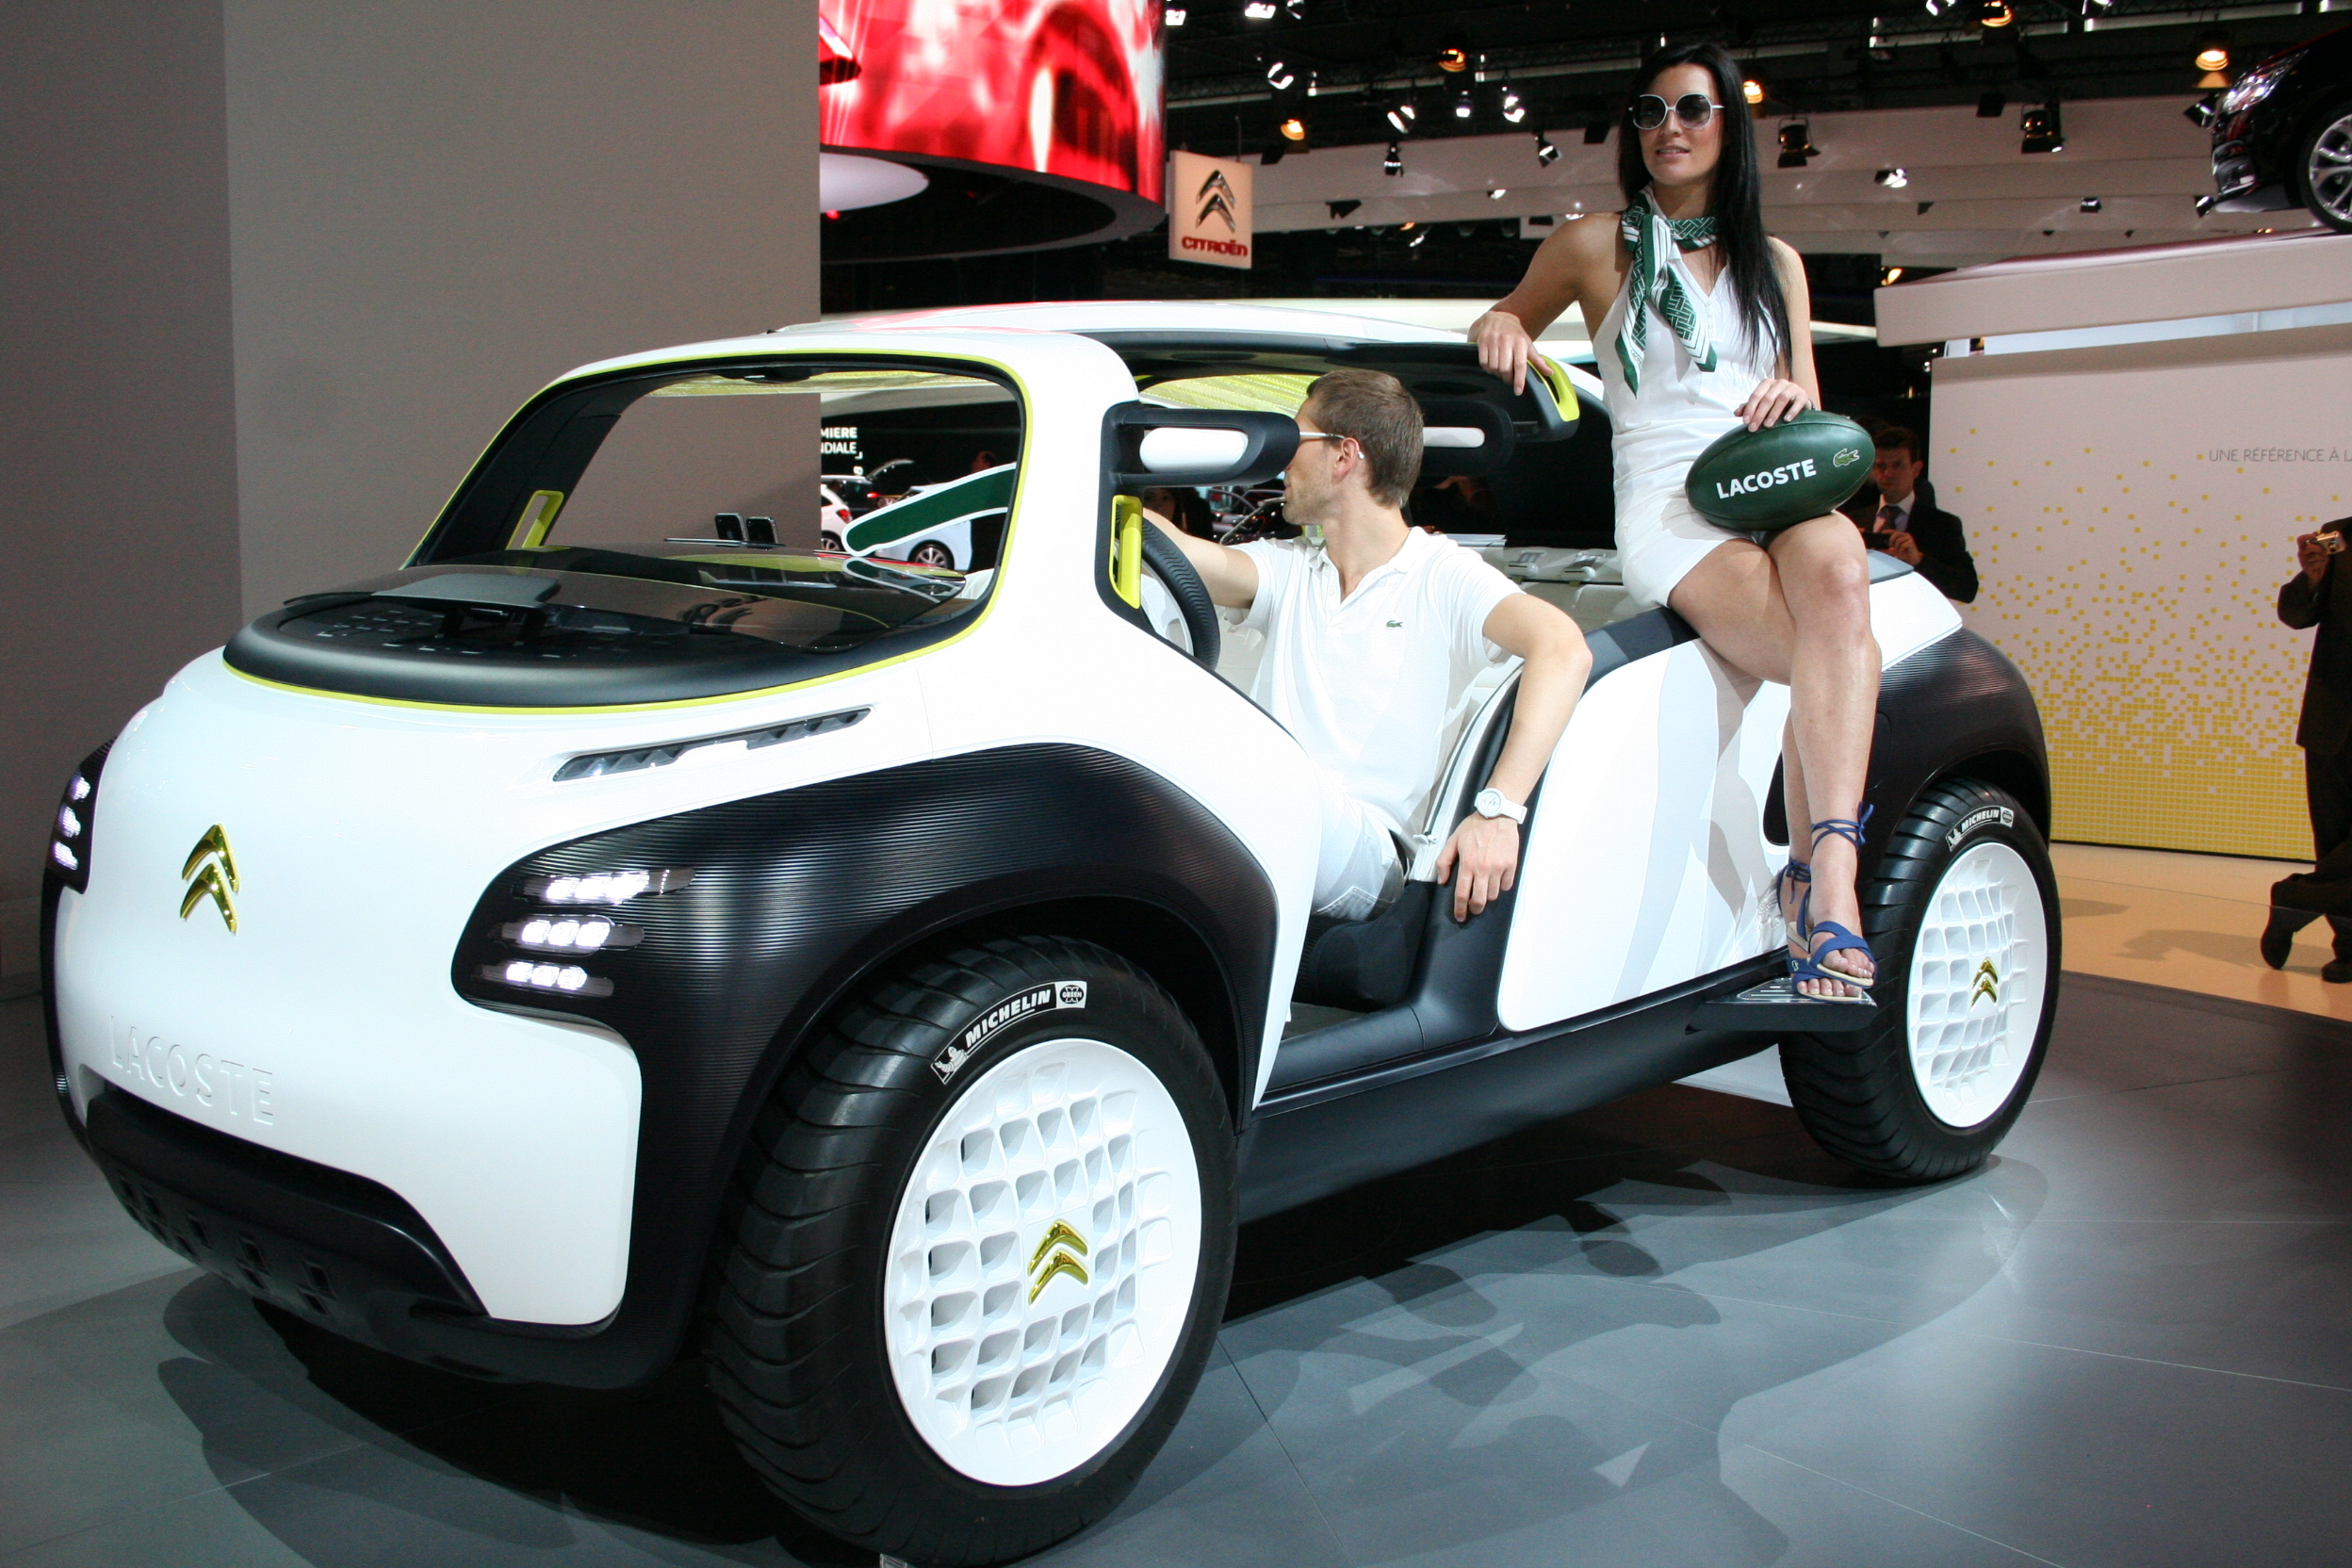 citroen lacoste concept 2010 au salon mondial de l. Black Bedroom Furniture Sets. Home Design Ideas